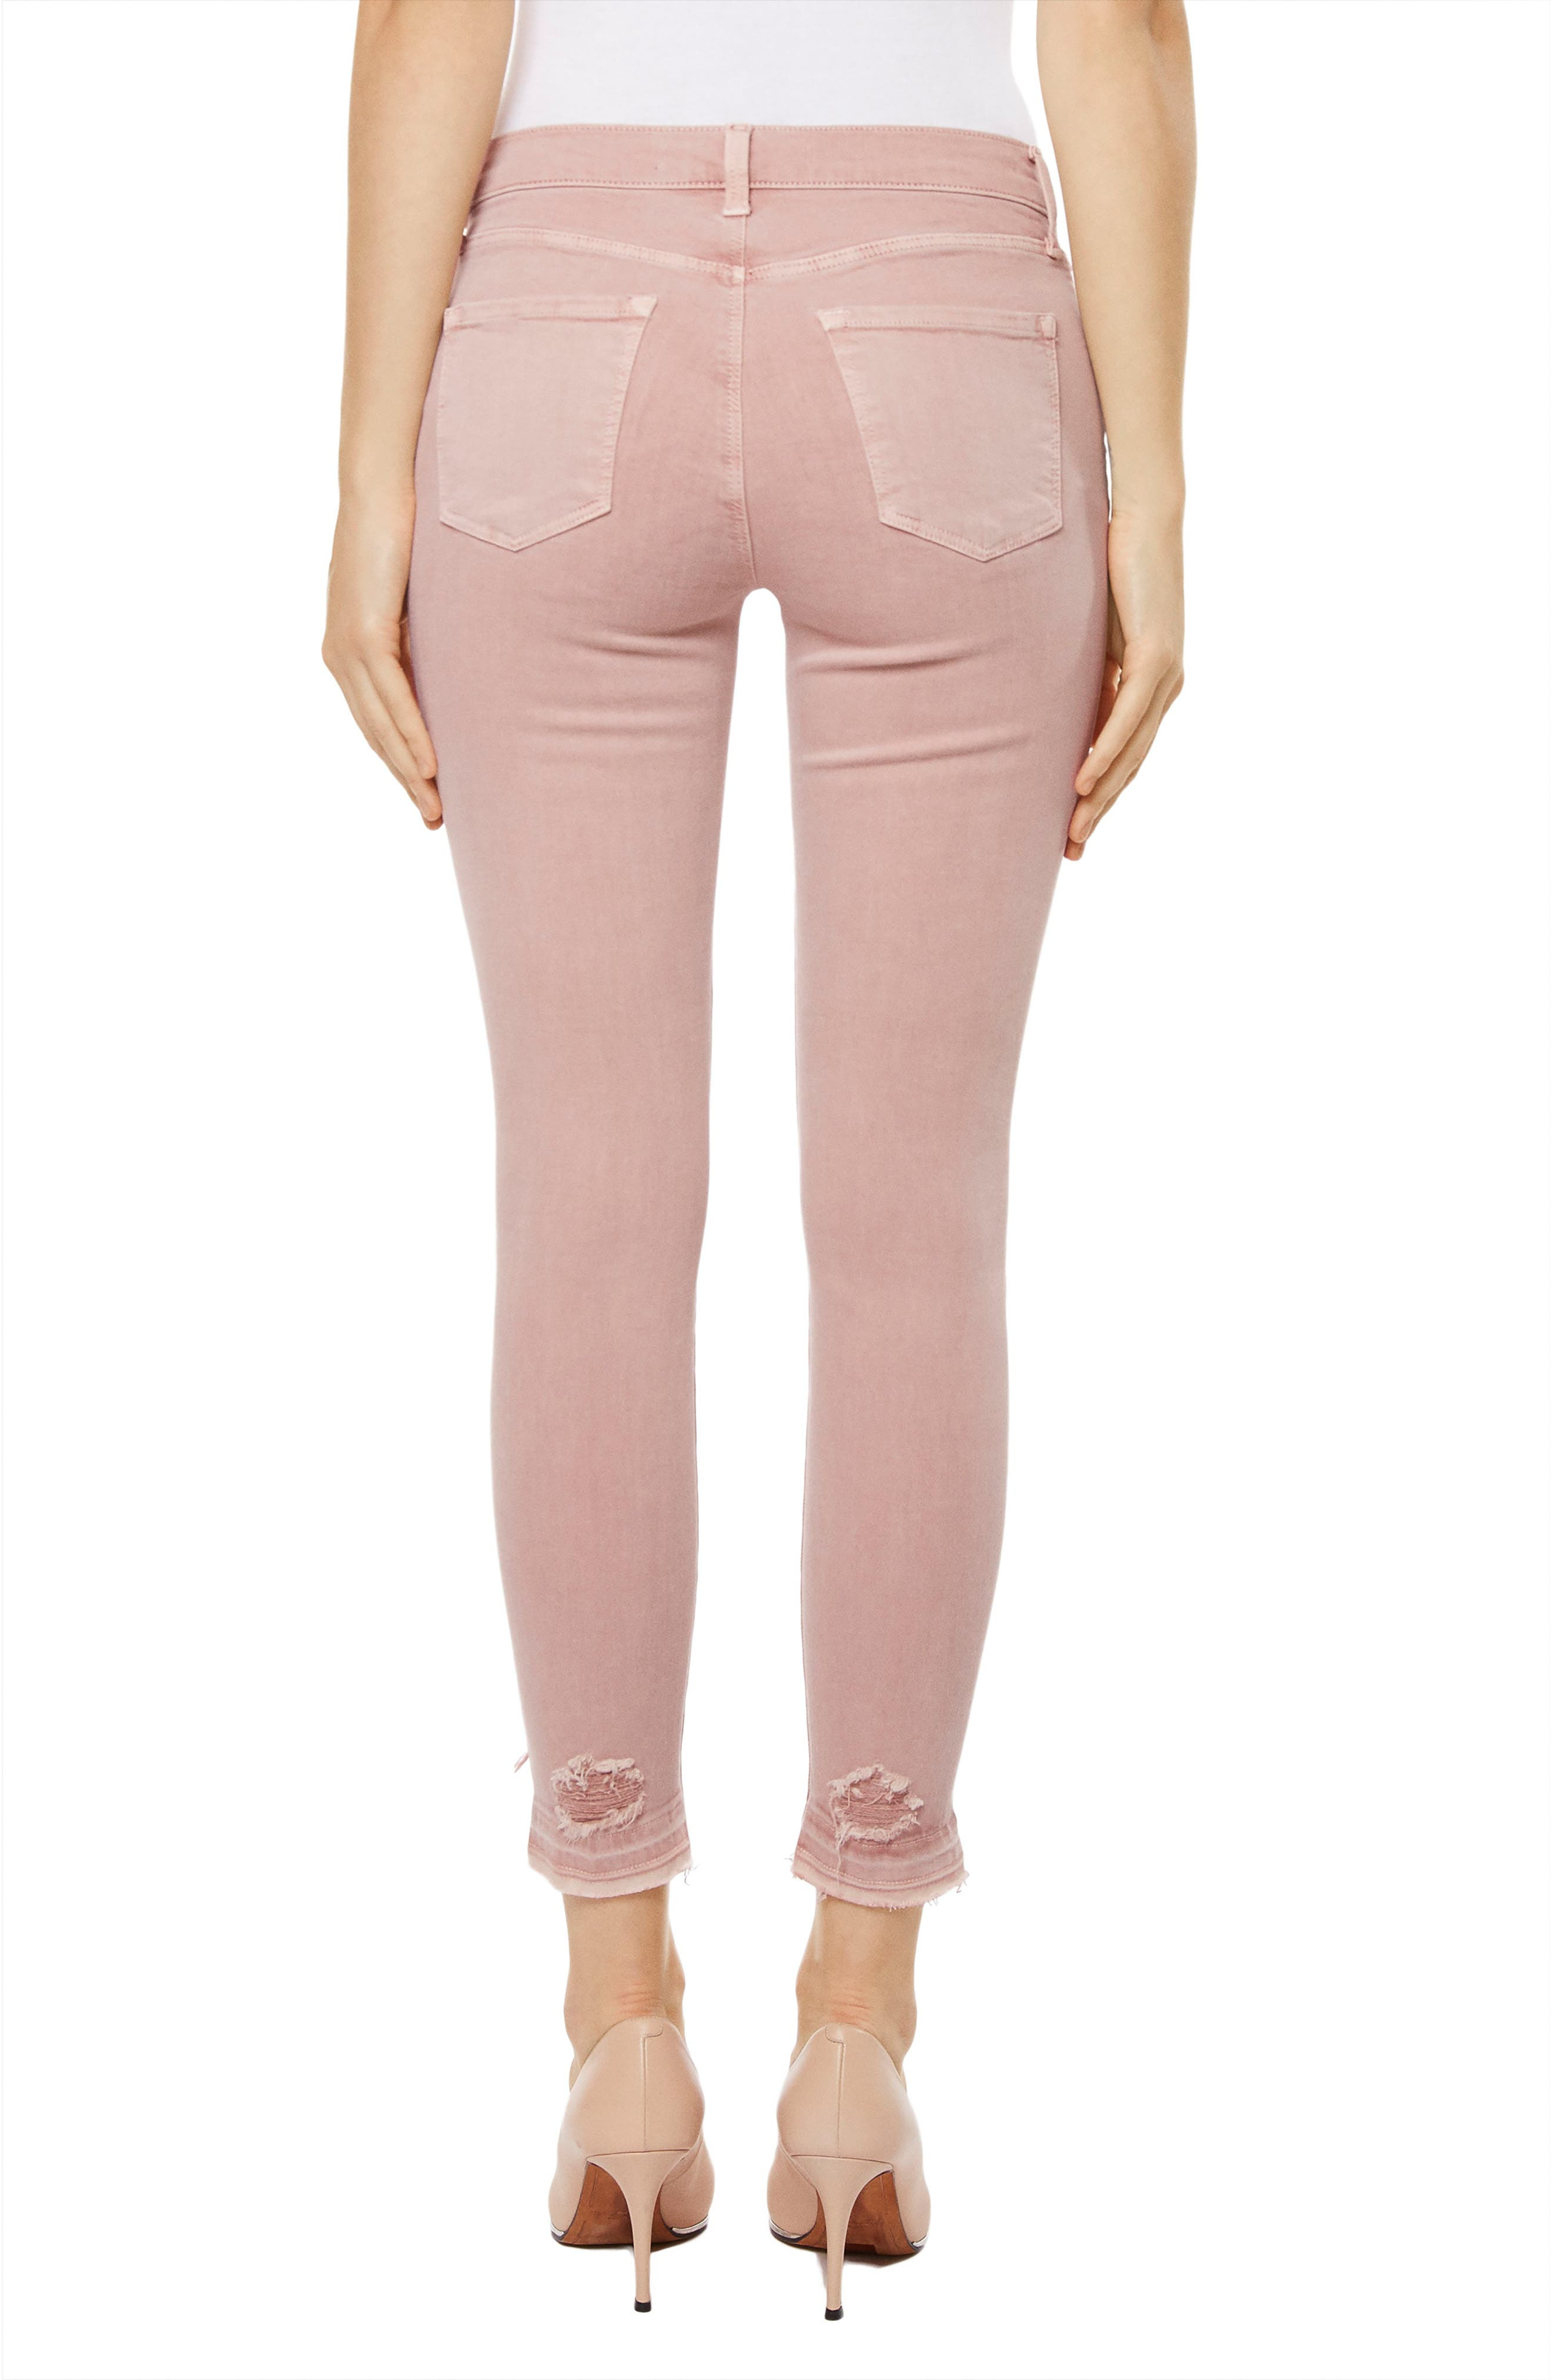 835 Capri Skinny Jeans,                             Alternate thumbnail 2, color,